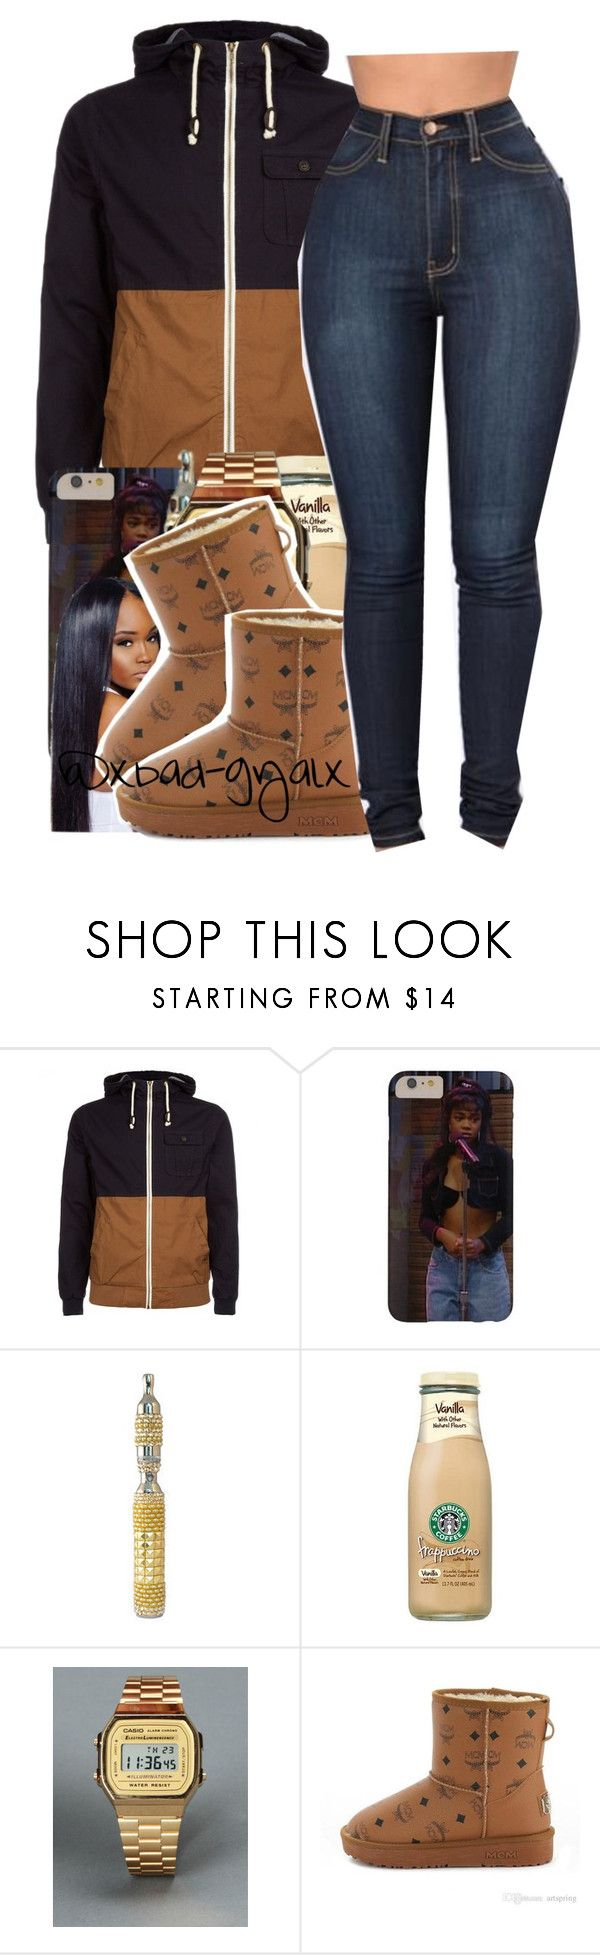 """$$$"" by xbad-gyalx ❤ liked on Polyvore featuring G-Shock and MCM"